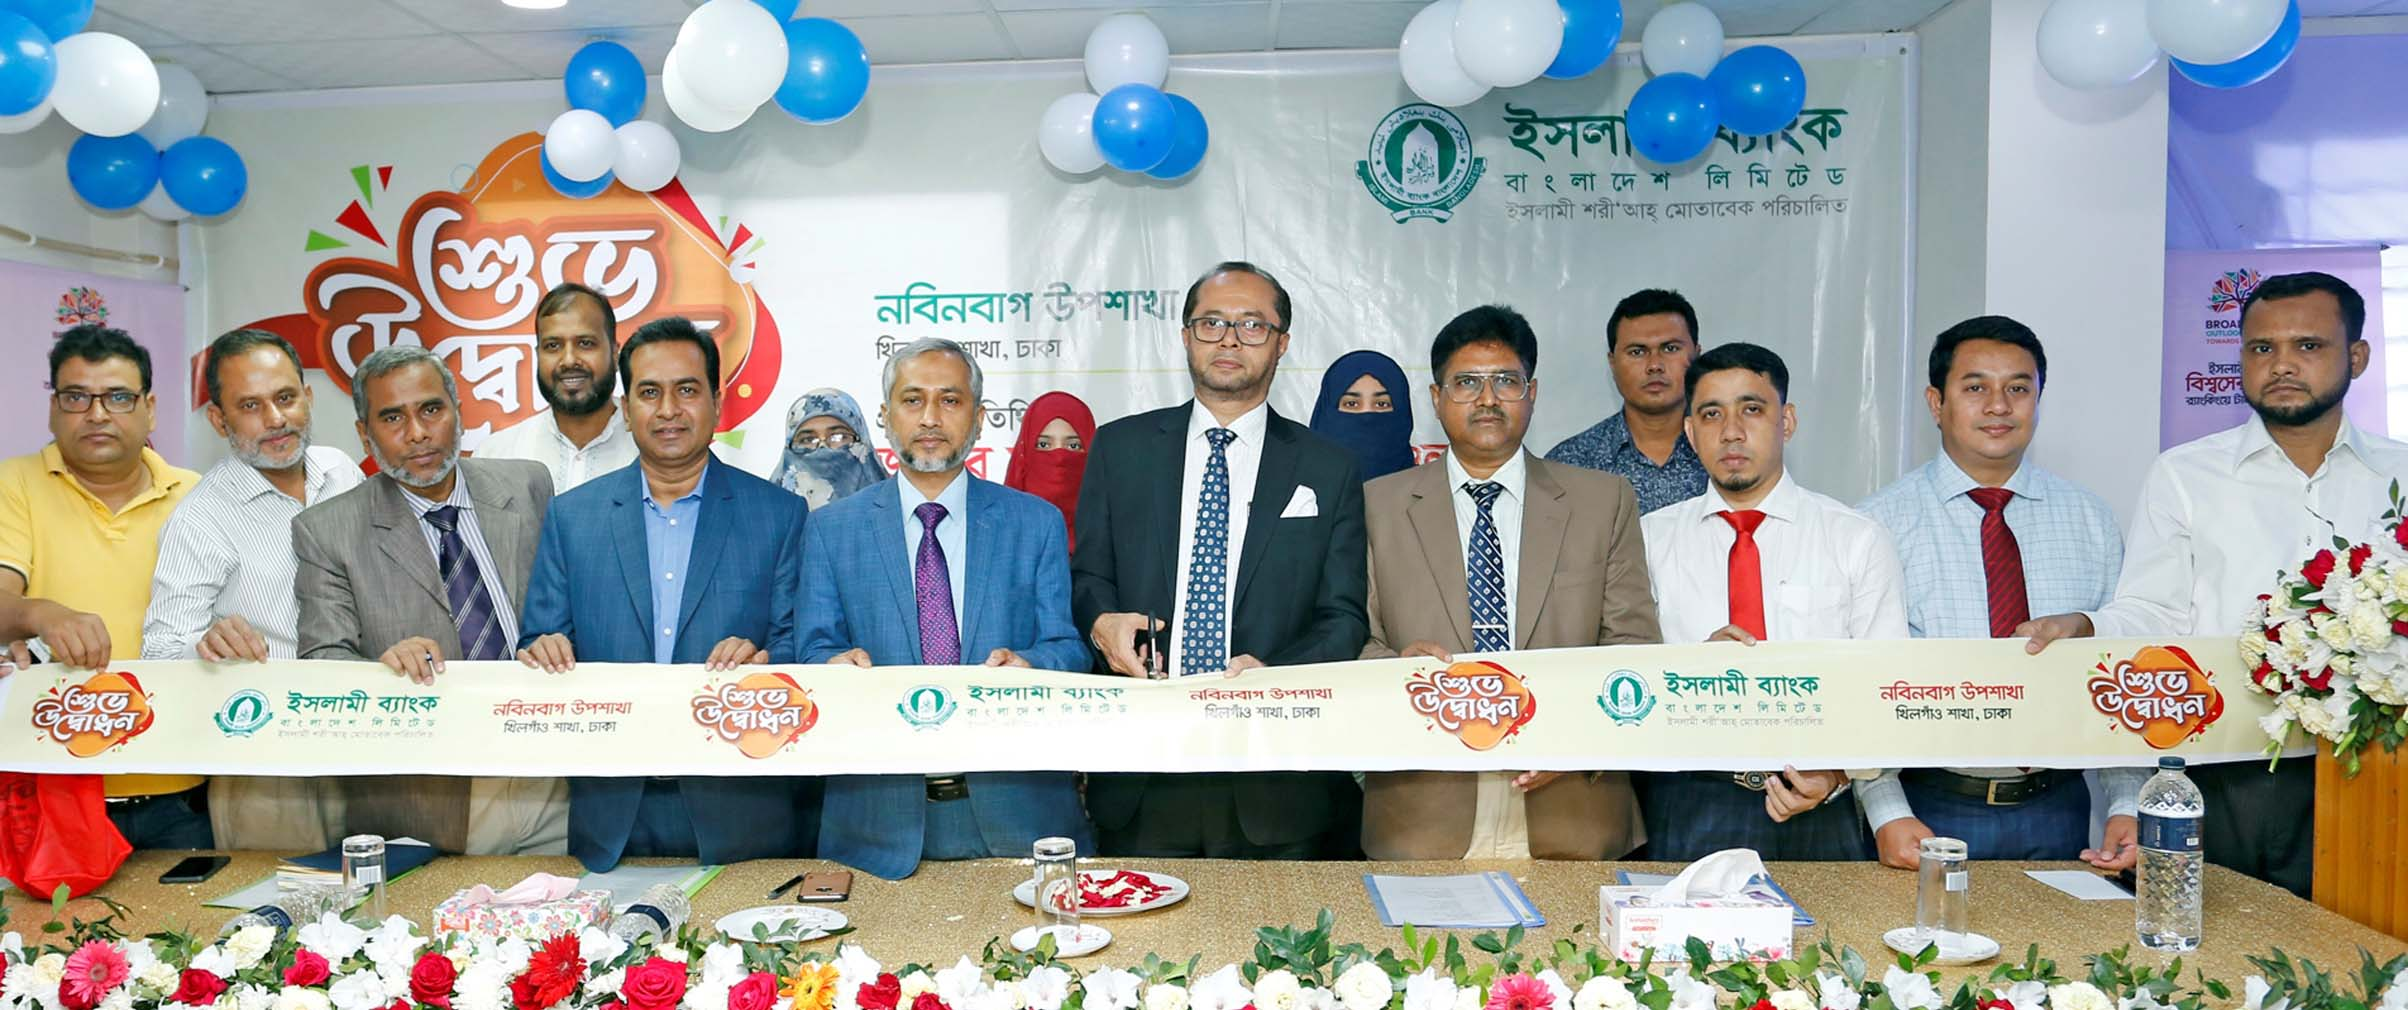 Mohammed Monirul Moula, Additional Managing Director of Islami Bank Bangladesh Limited, inaugurating the bank's sub-branch at Nabinbag in the city recently. Mohammod Ullah, Head of Dhaka East Zone and Dr Md Ashraf Ali, Head of Khilgaon Branch, among others, were present.